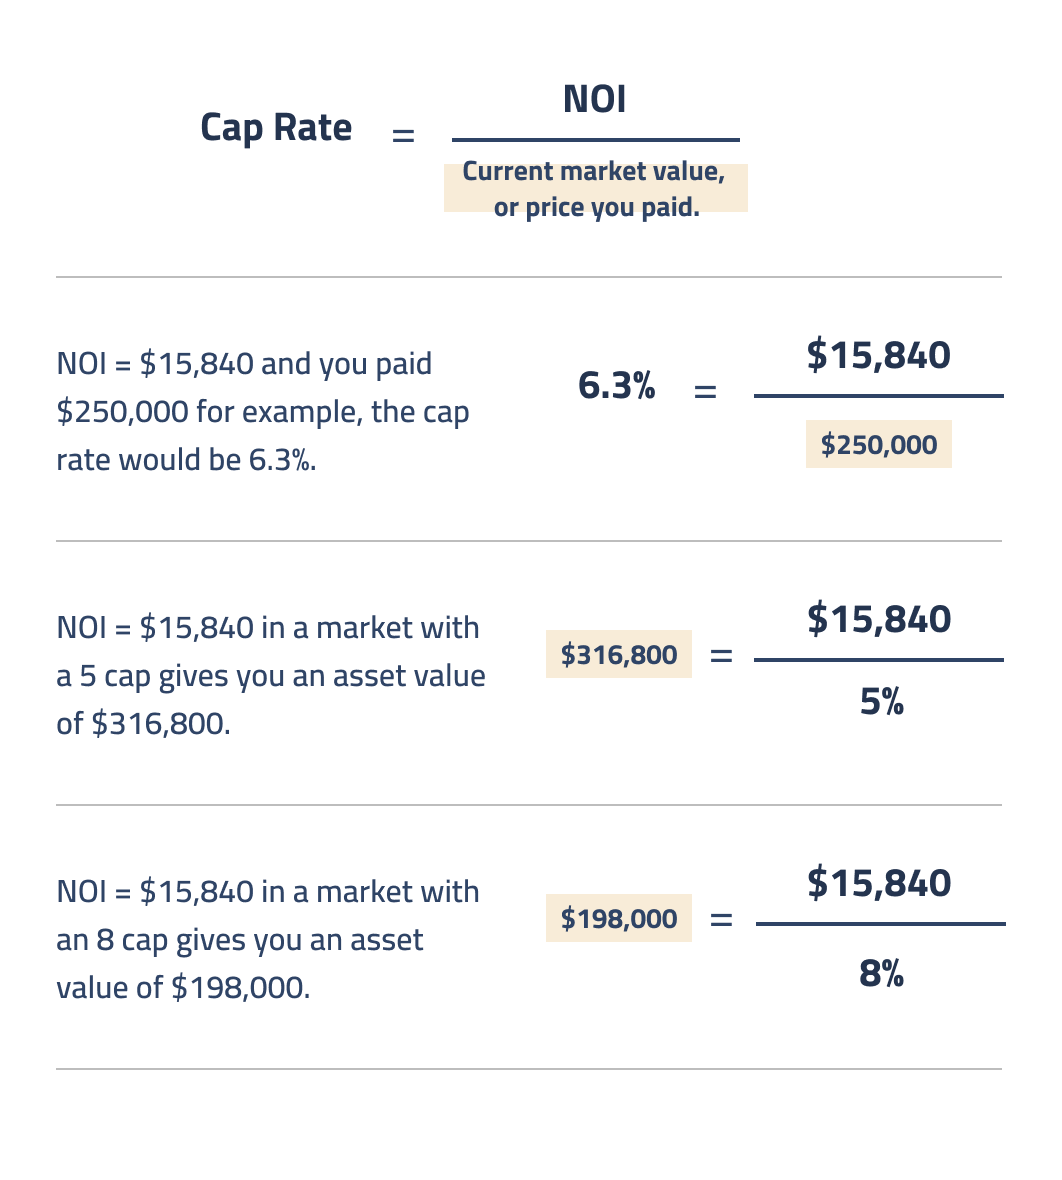 An example of a cap rate in real estate investing